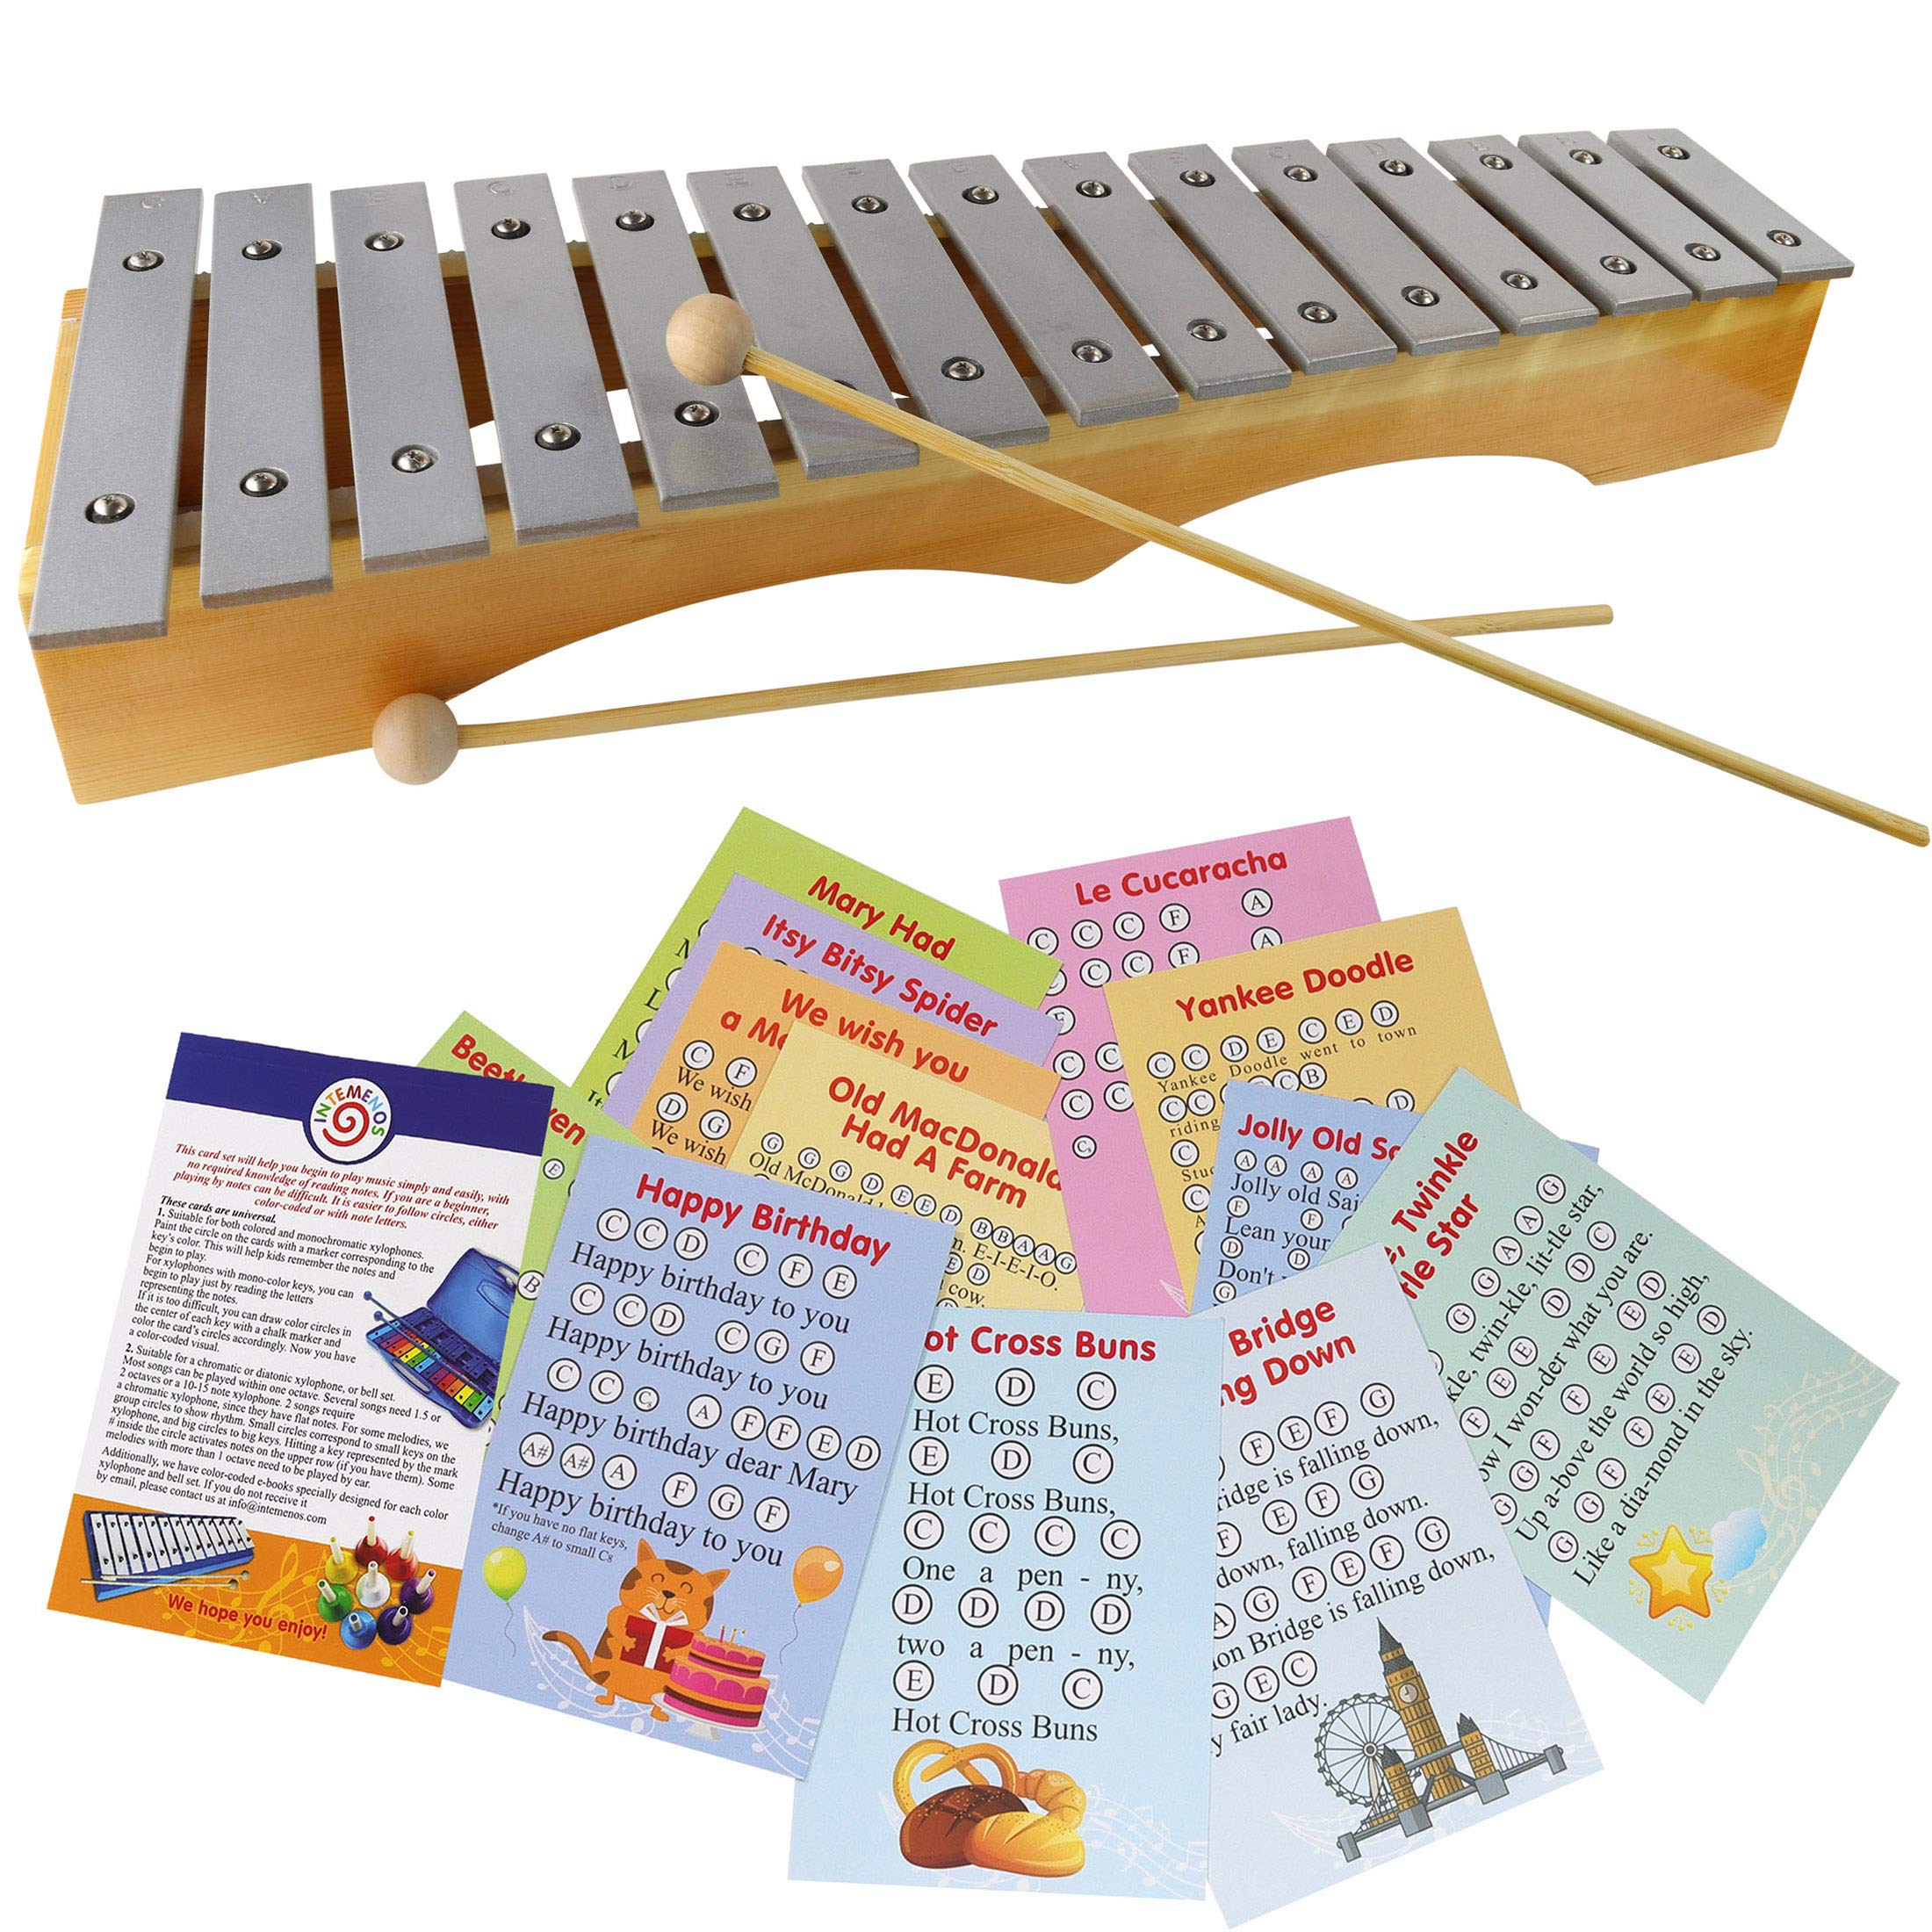 Metal Xylophone for Adults - Professional Diatonic Glockenspiel